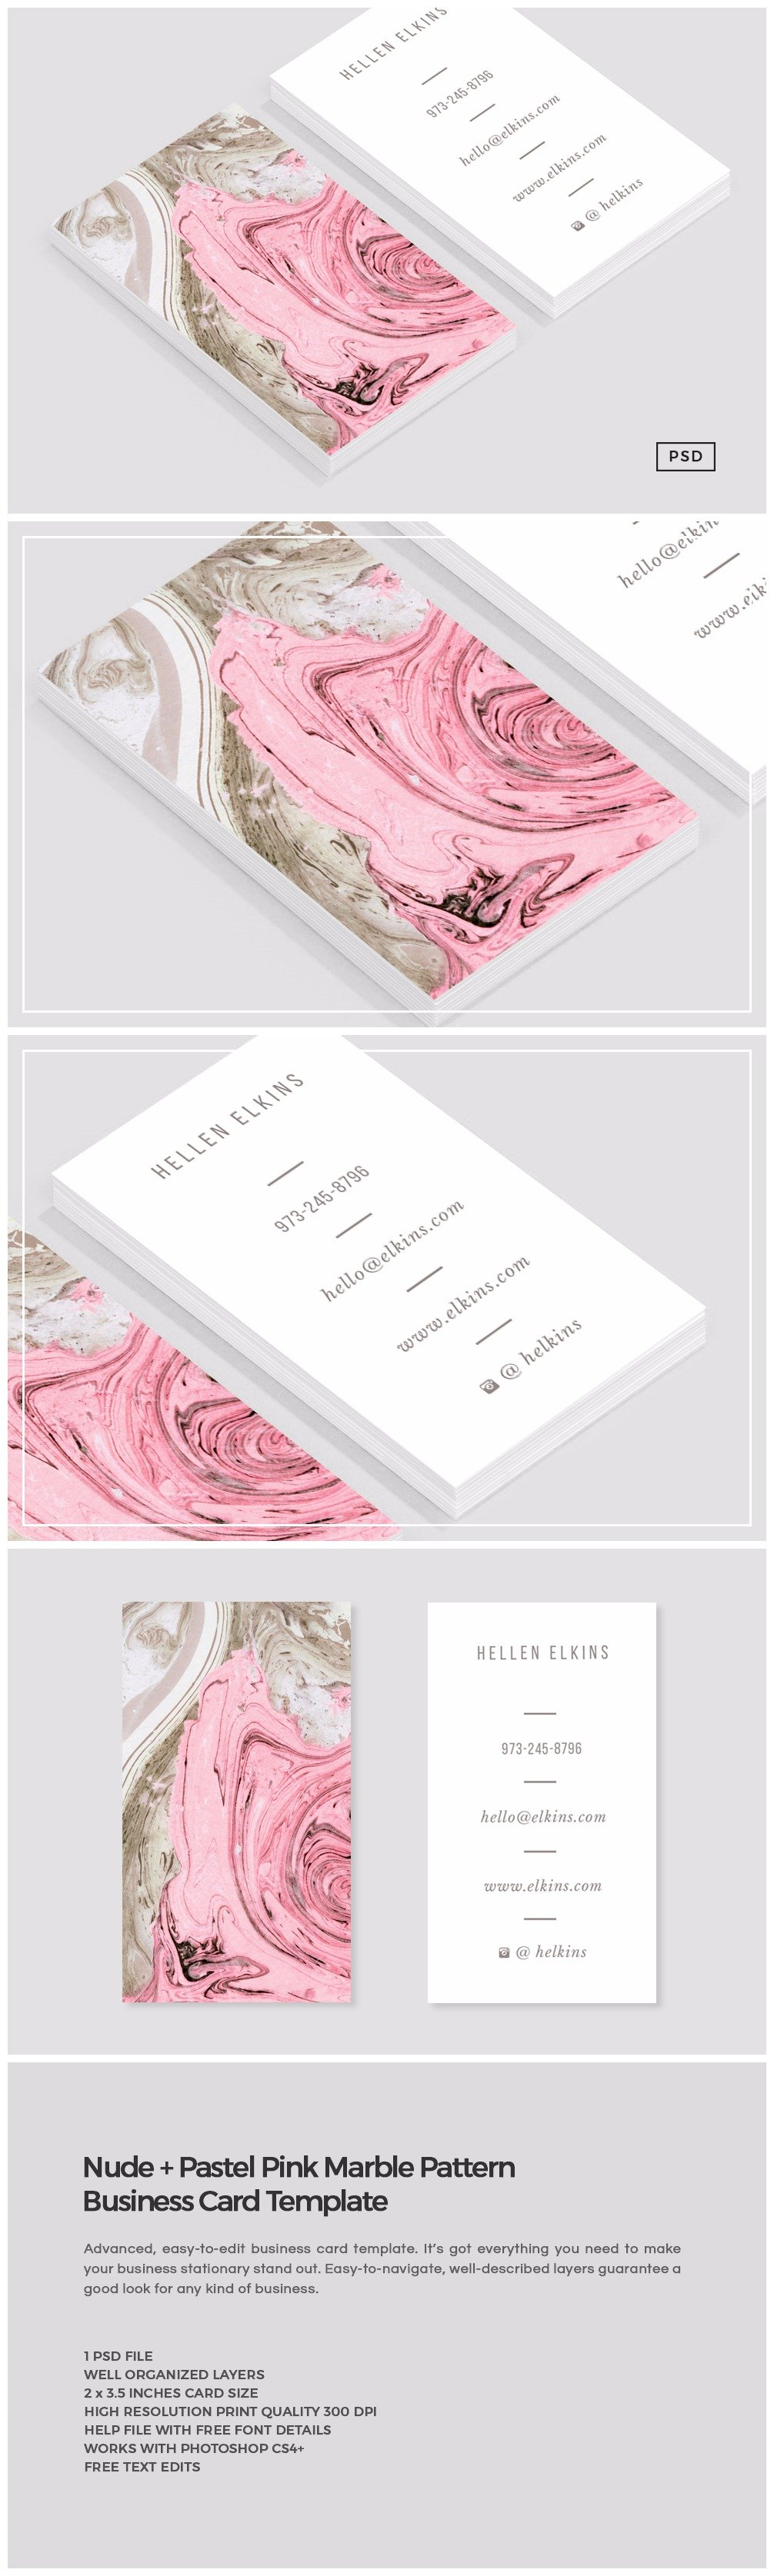 Nude pink marble business card business card templates nude pink marble business card business card templates creative market reheart Gallery